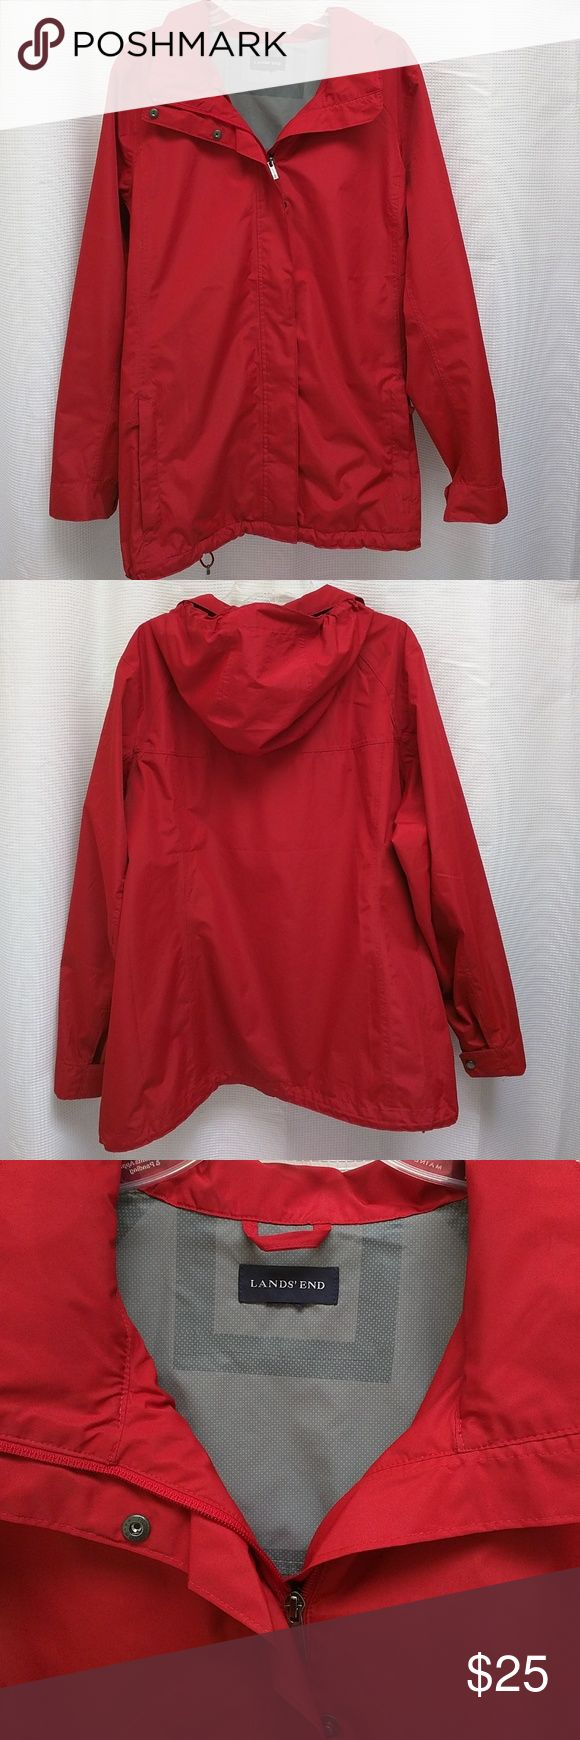 Lands' End all weather jacket EUC Land's End jacket.  Great Lands' End quality.  2 front zippered pockets.  2 inside mesh pockets.  Adjustable cuff closure.  Bottom draw string.  Hood can be folded and stored under collar.  IMHO runs on the large side. Lands' End Jackets & Coats